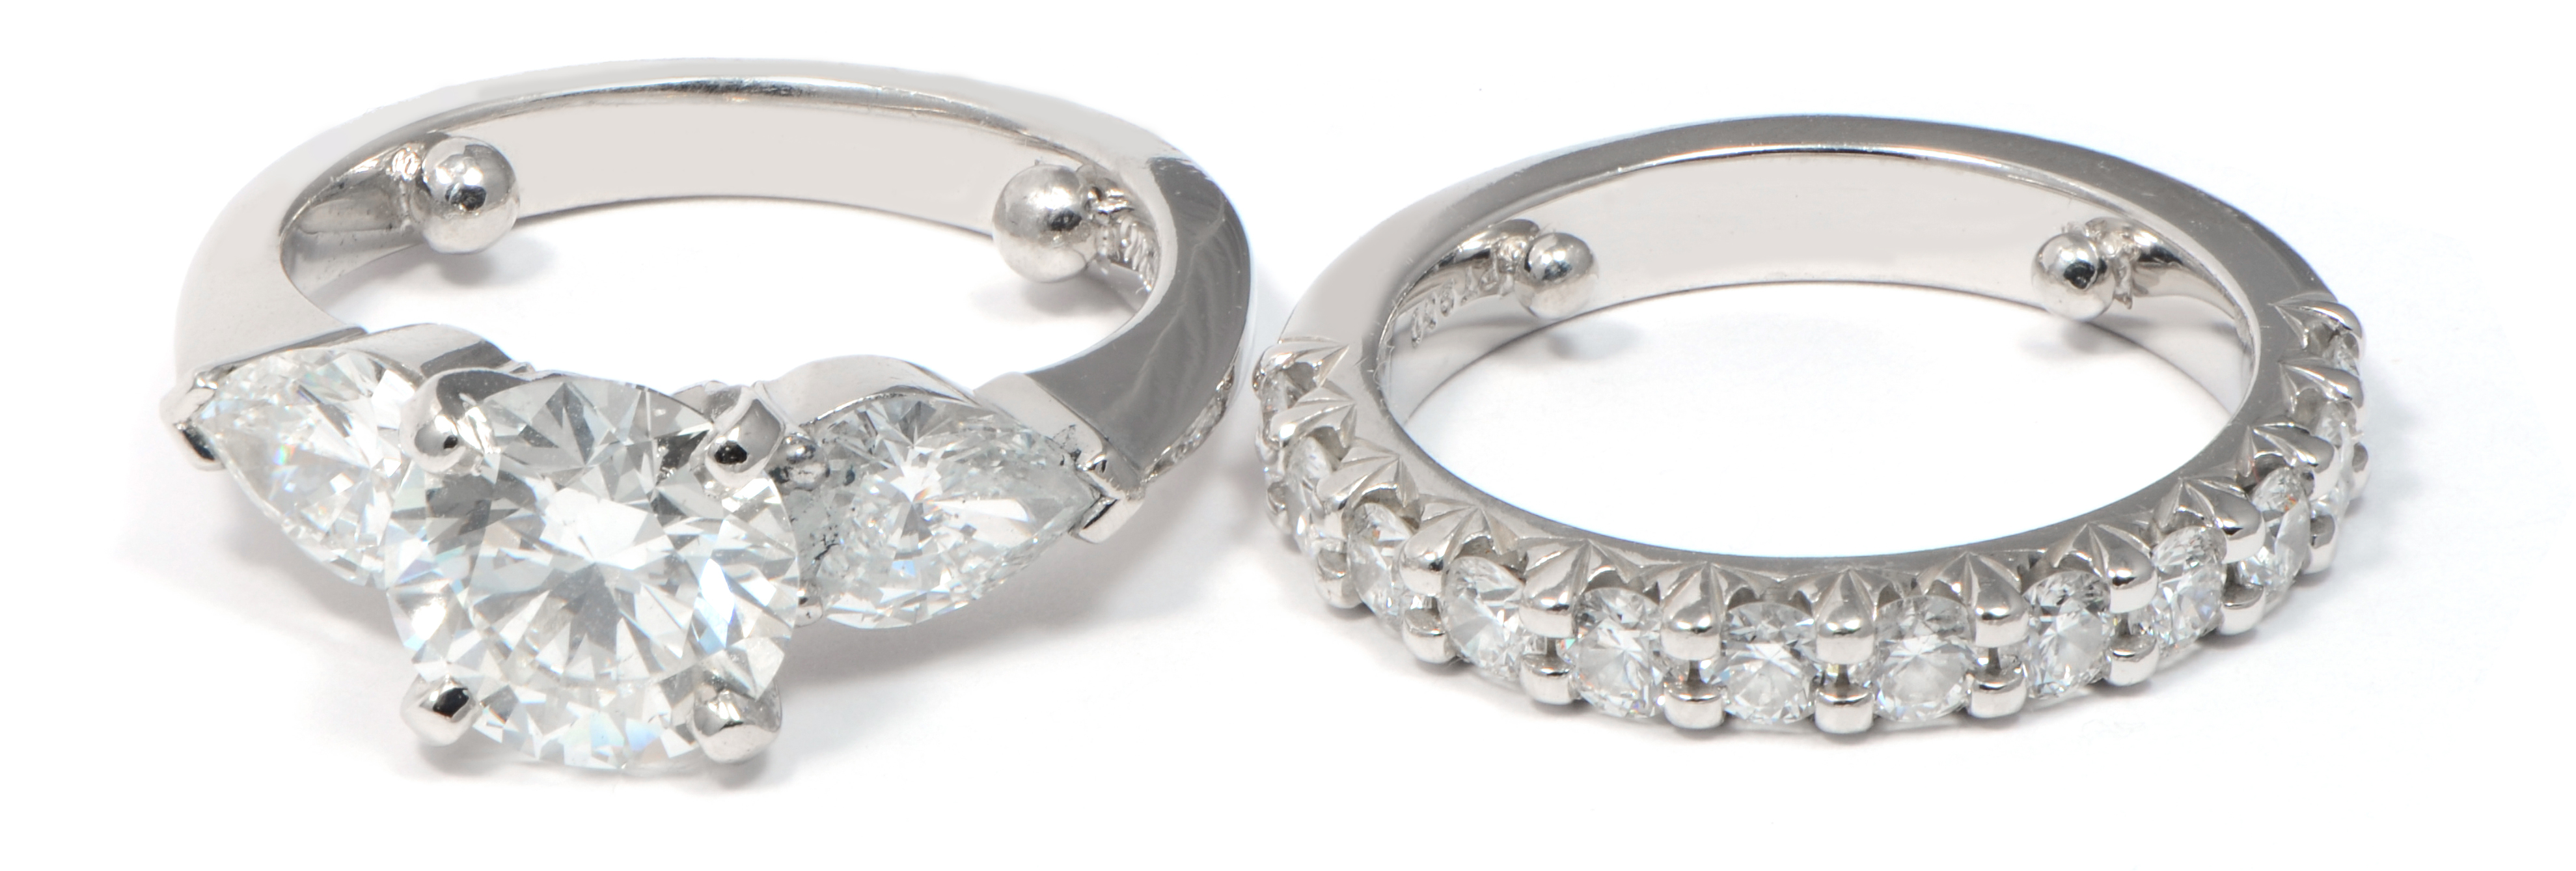 Sizing Beads in Engagement & Wedding Rings